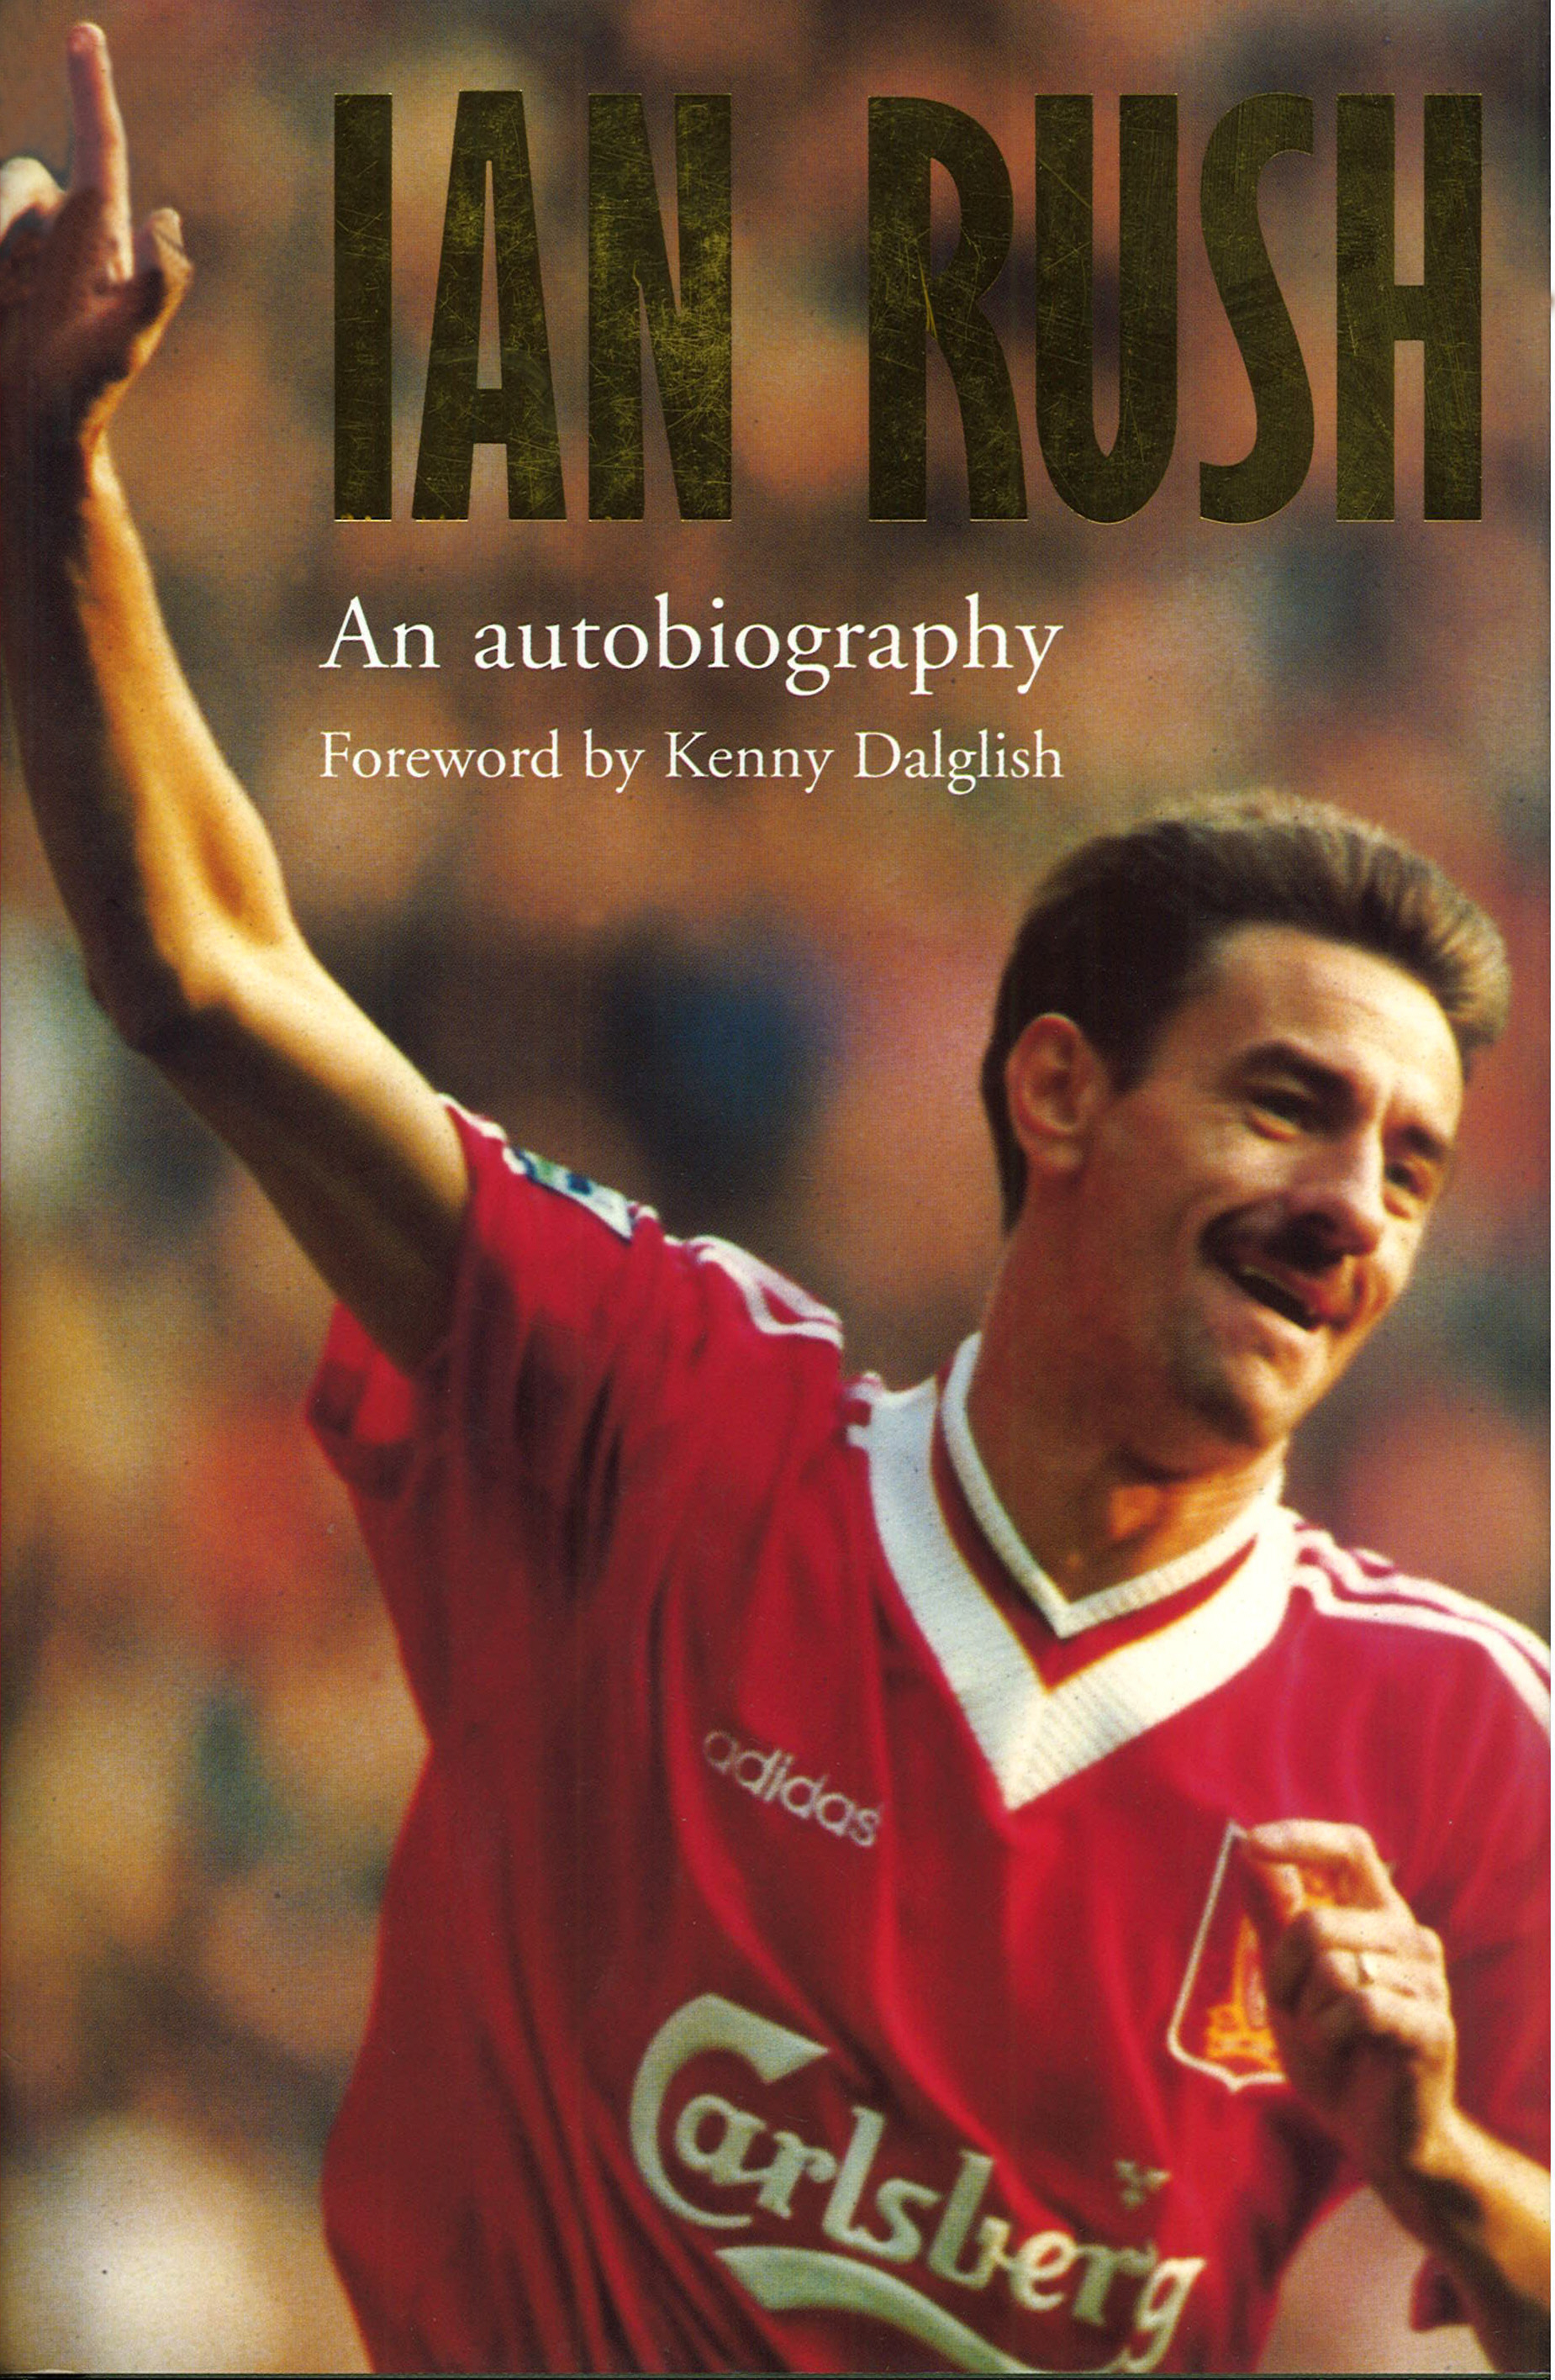 Ian Rush - An Autobiography With Ken Gorman